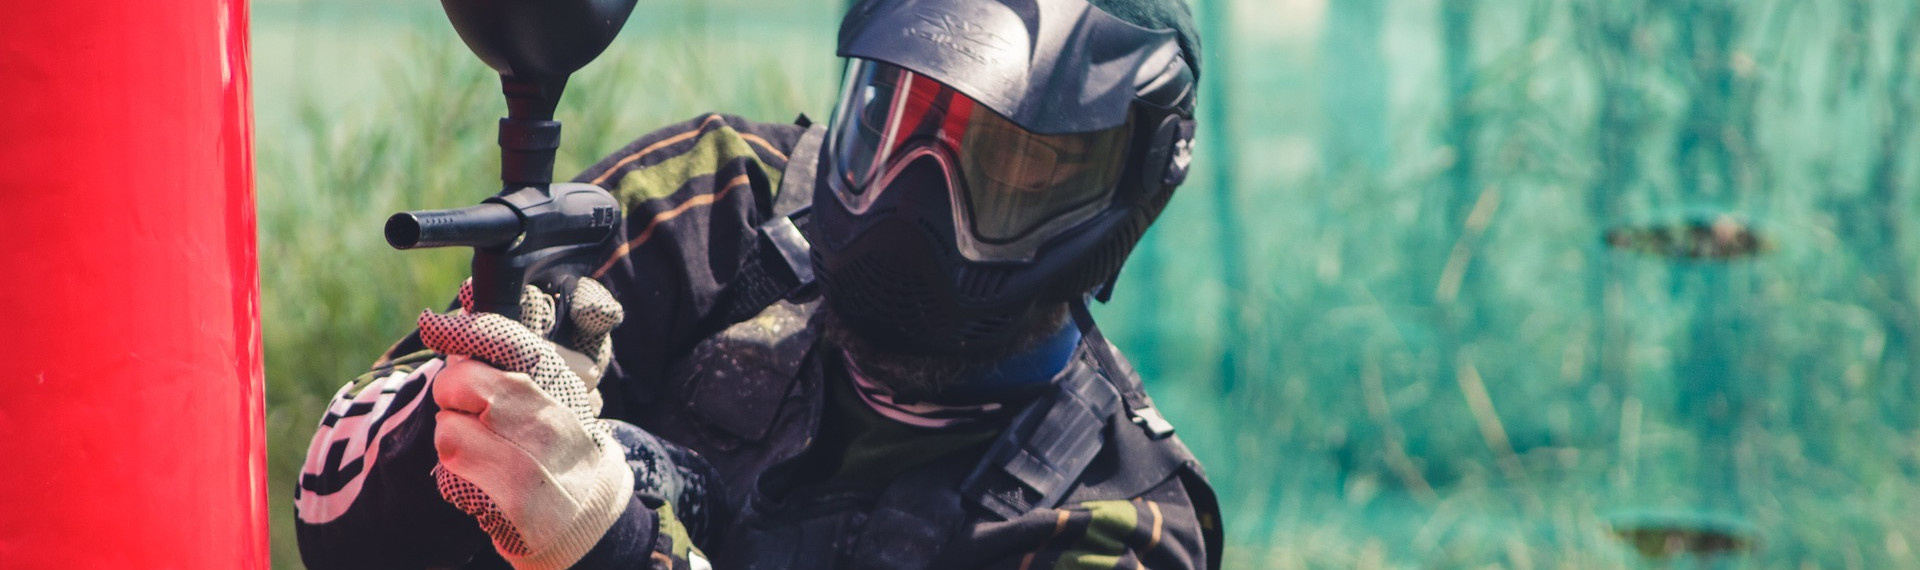 Paintball à Bordeaux | LE Site EVG | Pissup Voyages